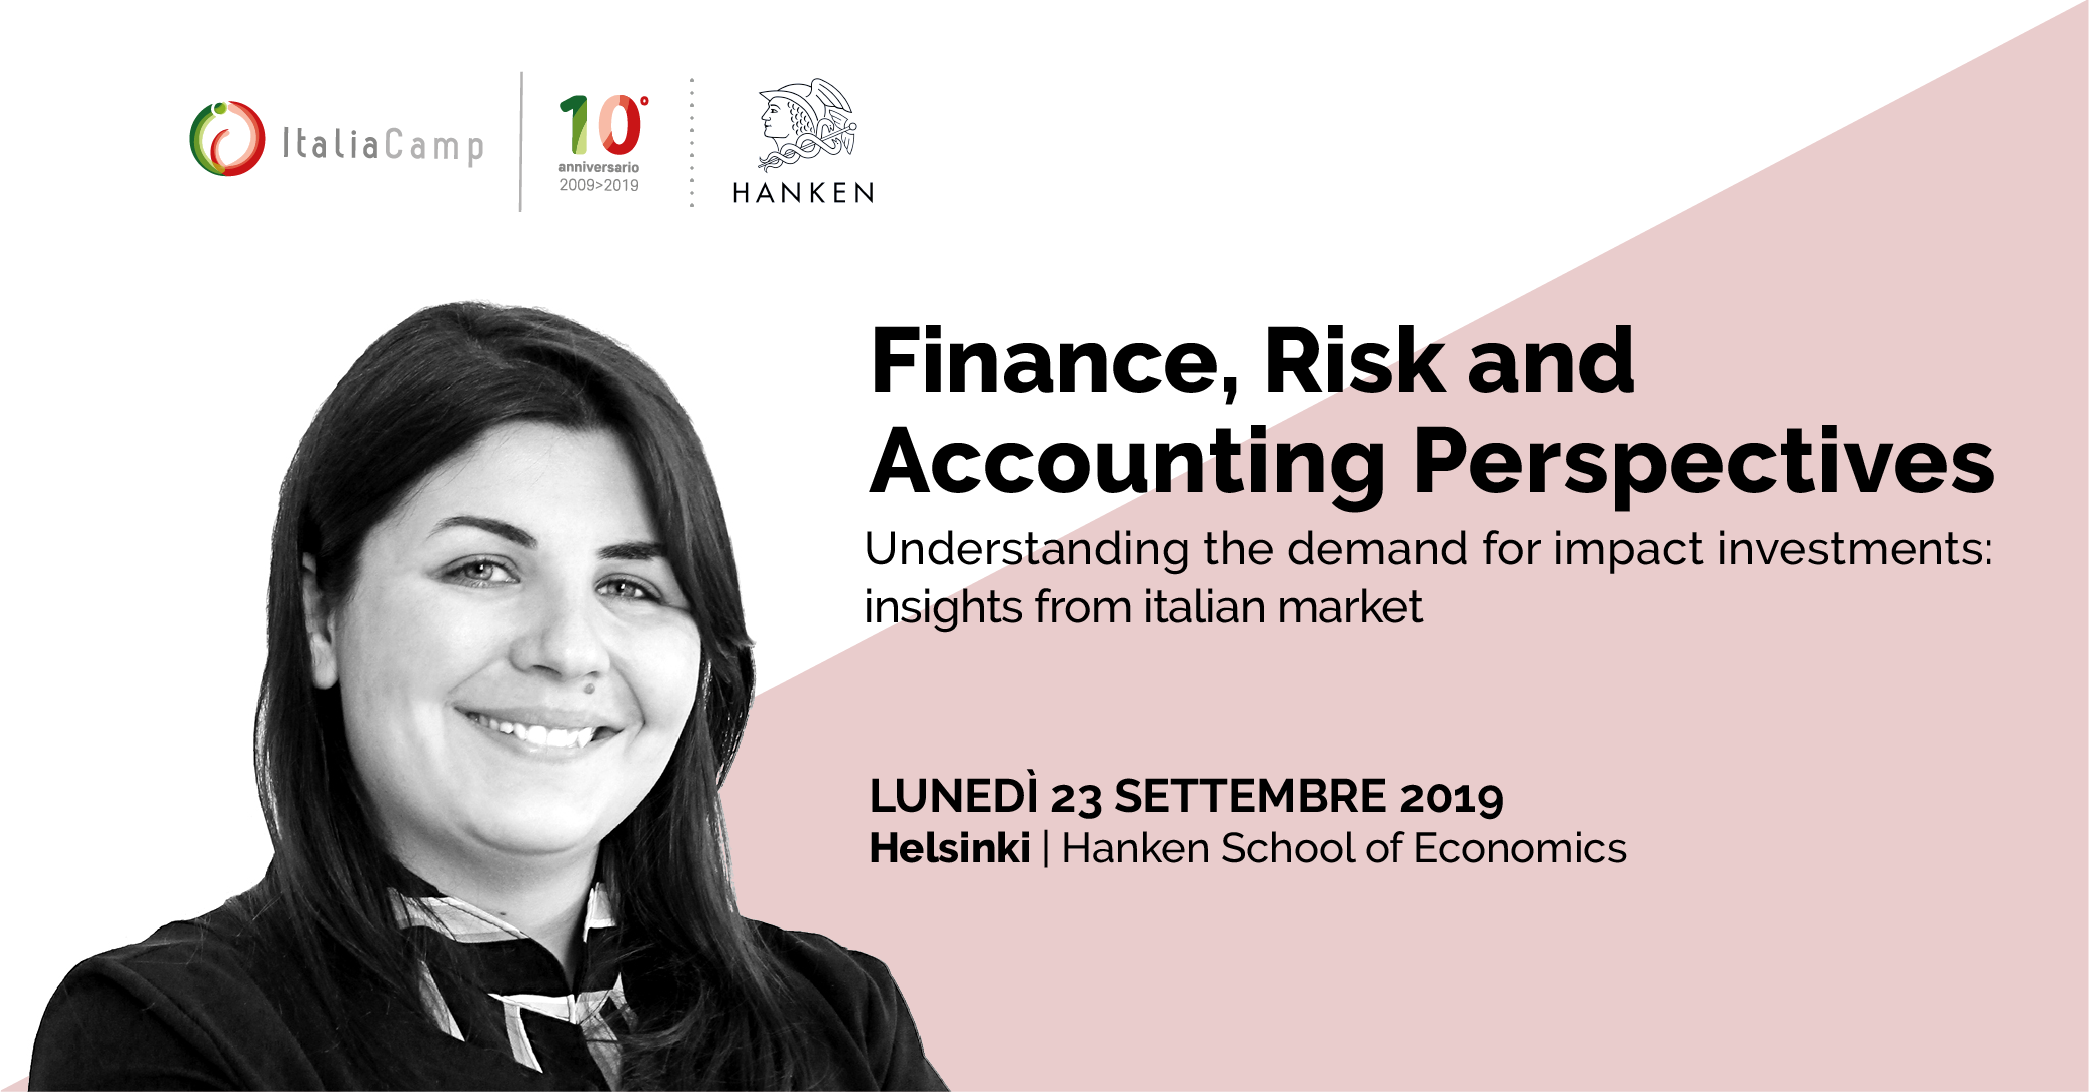 italiacamp-a-helsinki-per-la-conferenza-finance-risk-and-accounting-perspectives